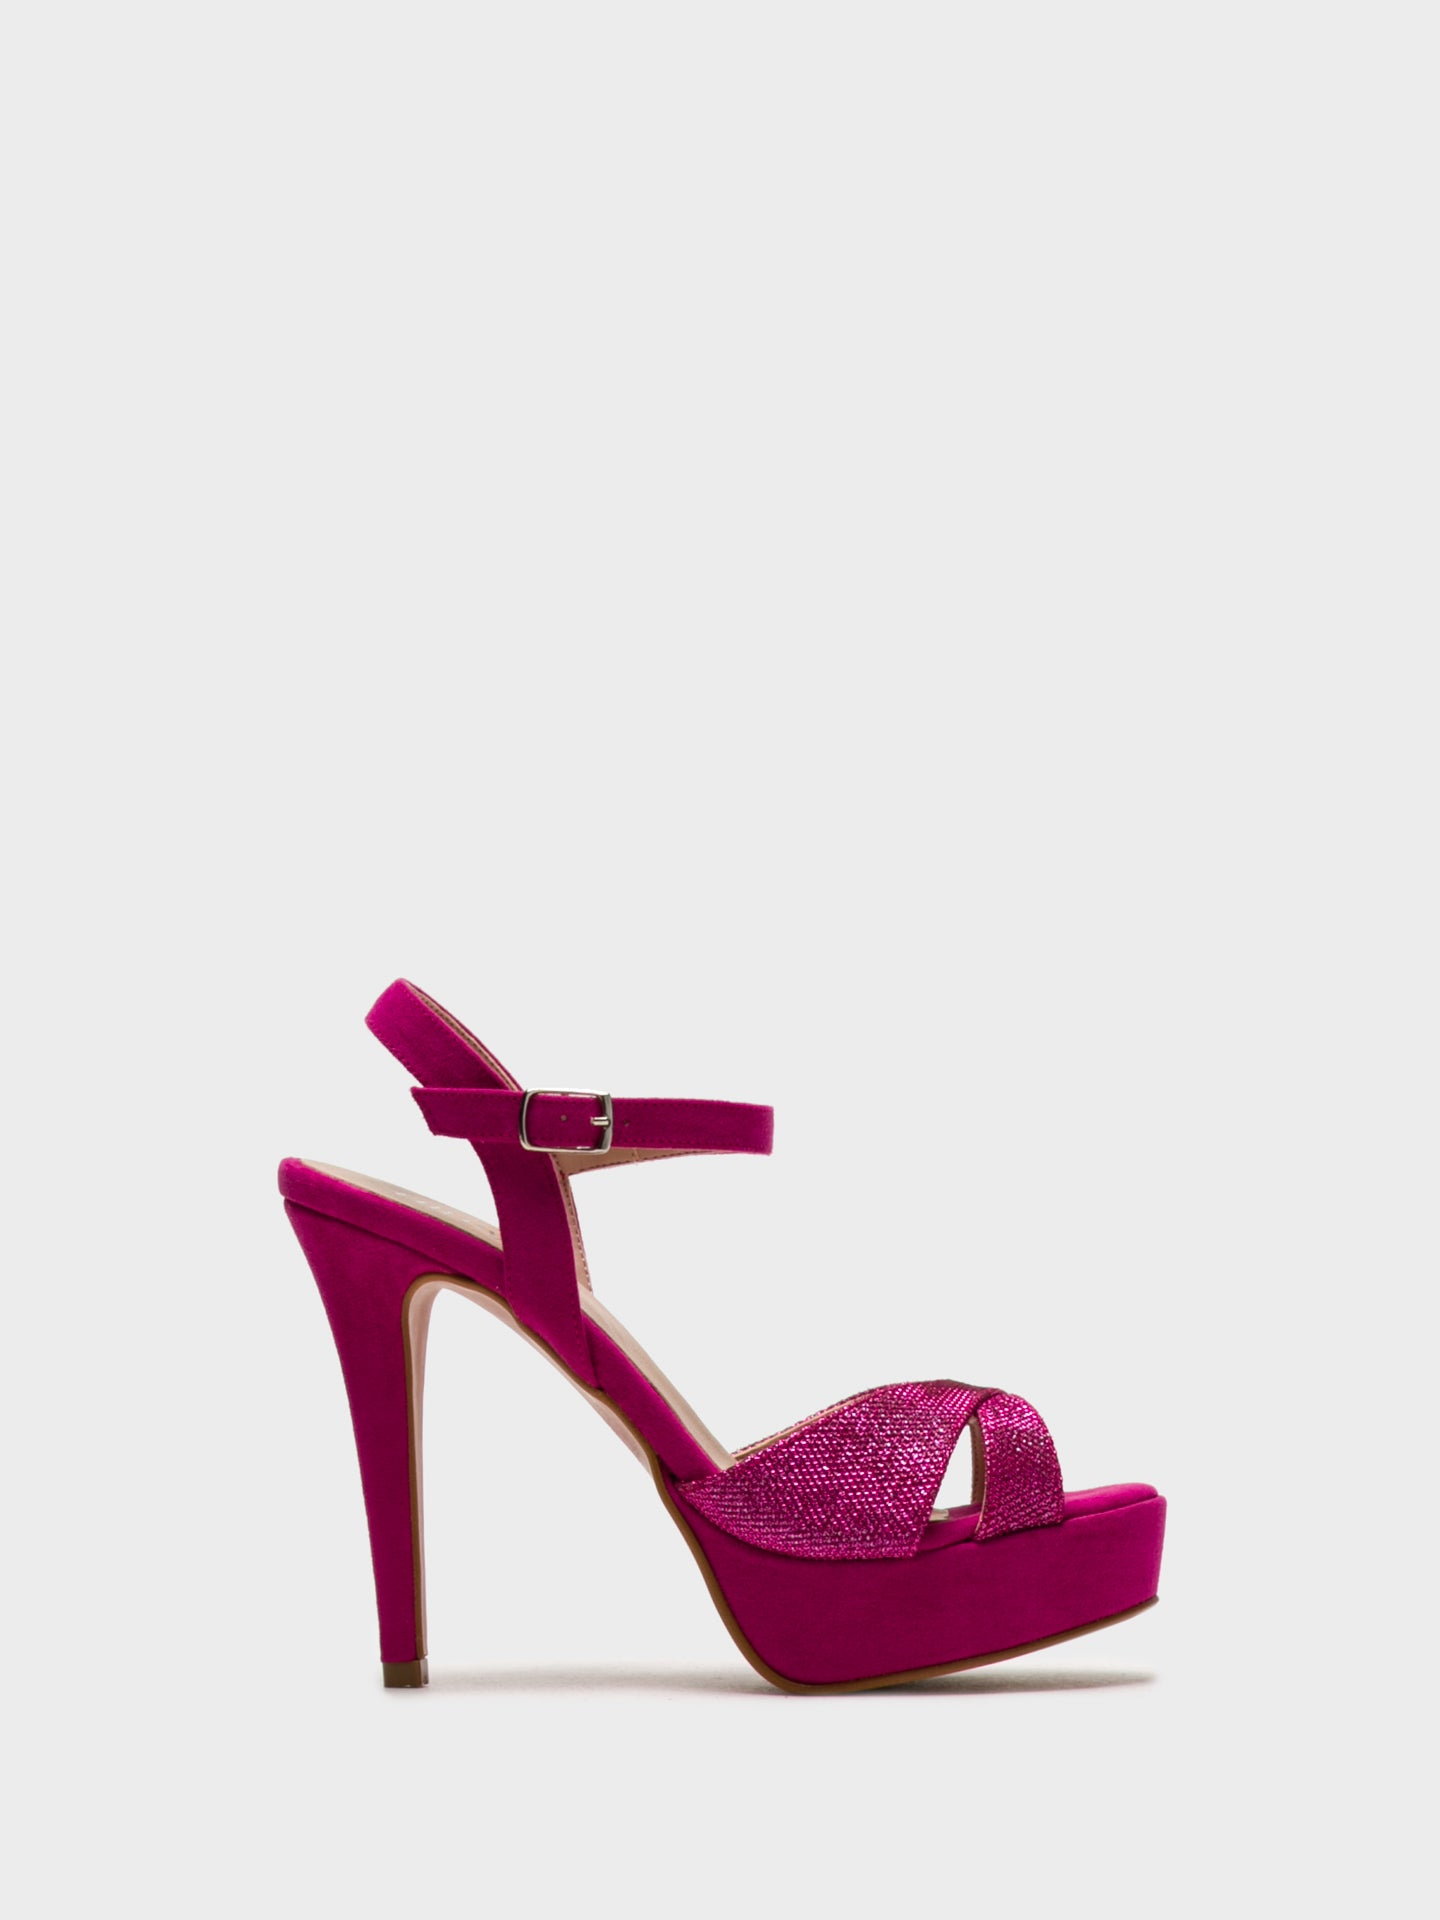 Foreva HotPink Sling-Back Pumps Sandals